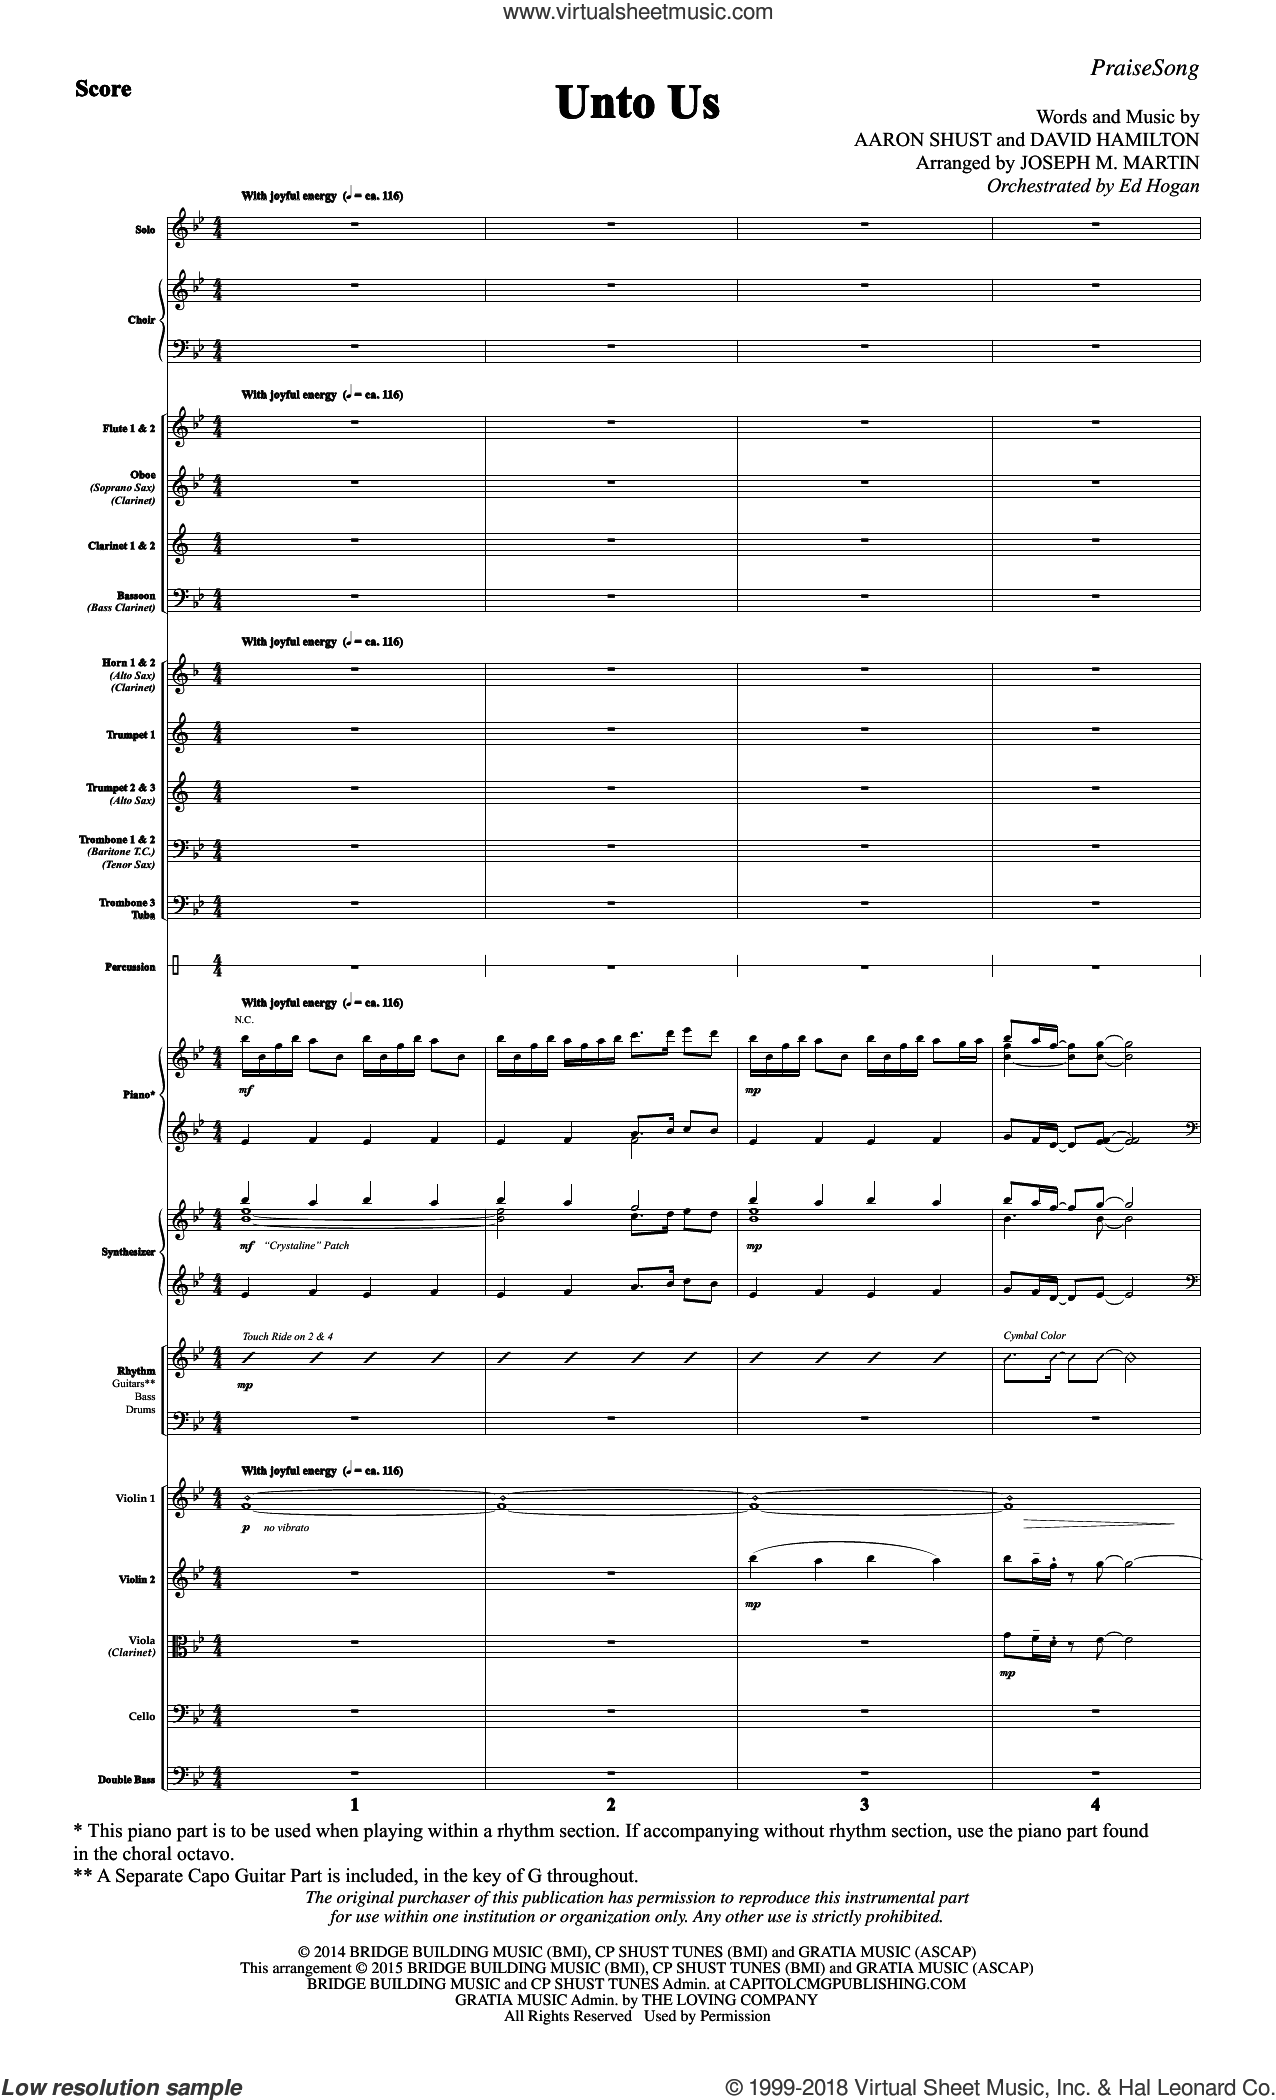 Unto Us (COMPLETE) sheet music for orchestra/band by Joseph M. Martin, Aaron Shust and David Hamilton, intermediate skill level